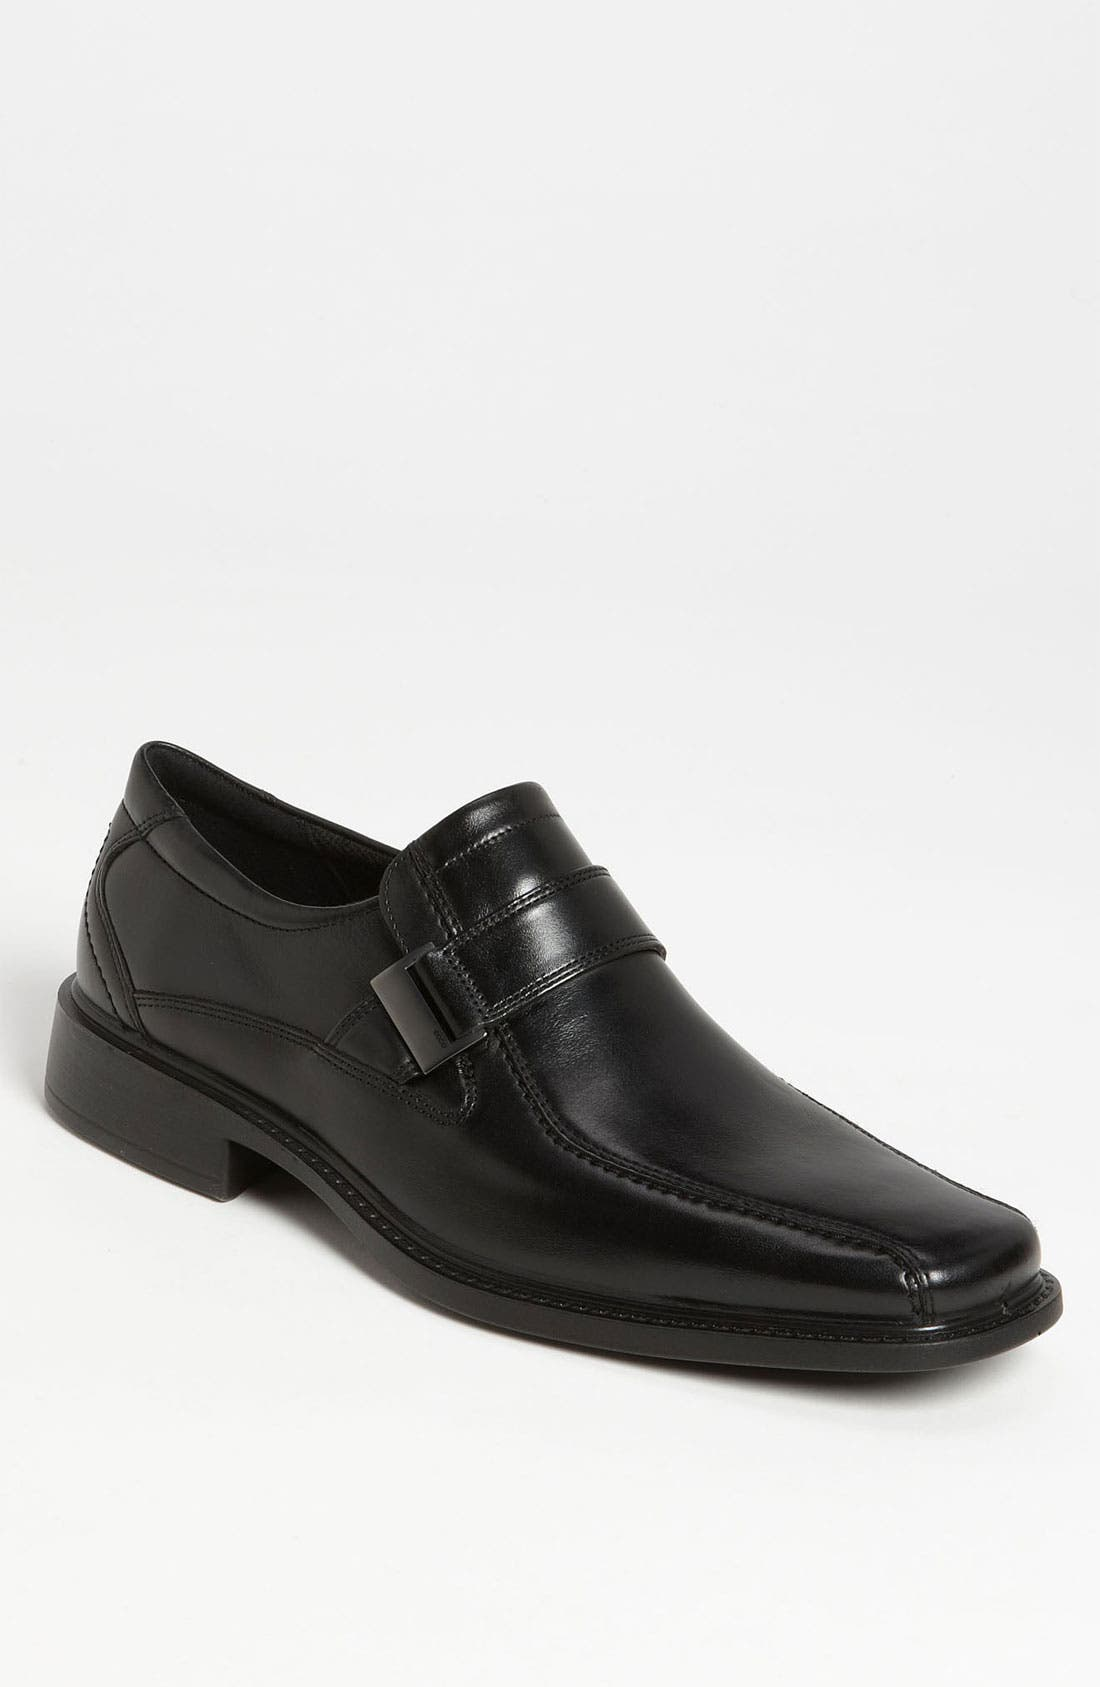 'New Jersey' Venetian Loafer,                             Main thumbnail 1, color,